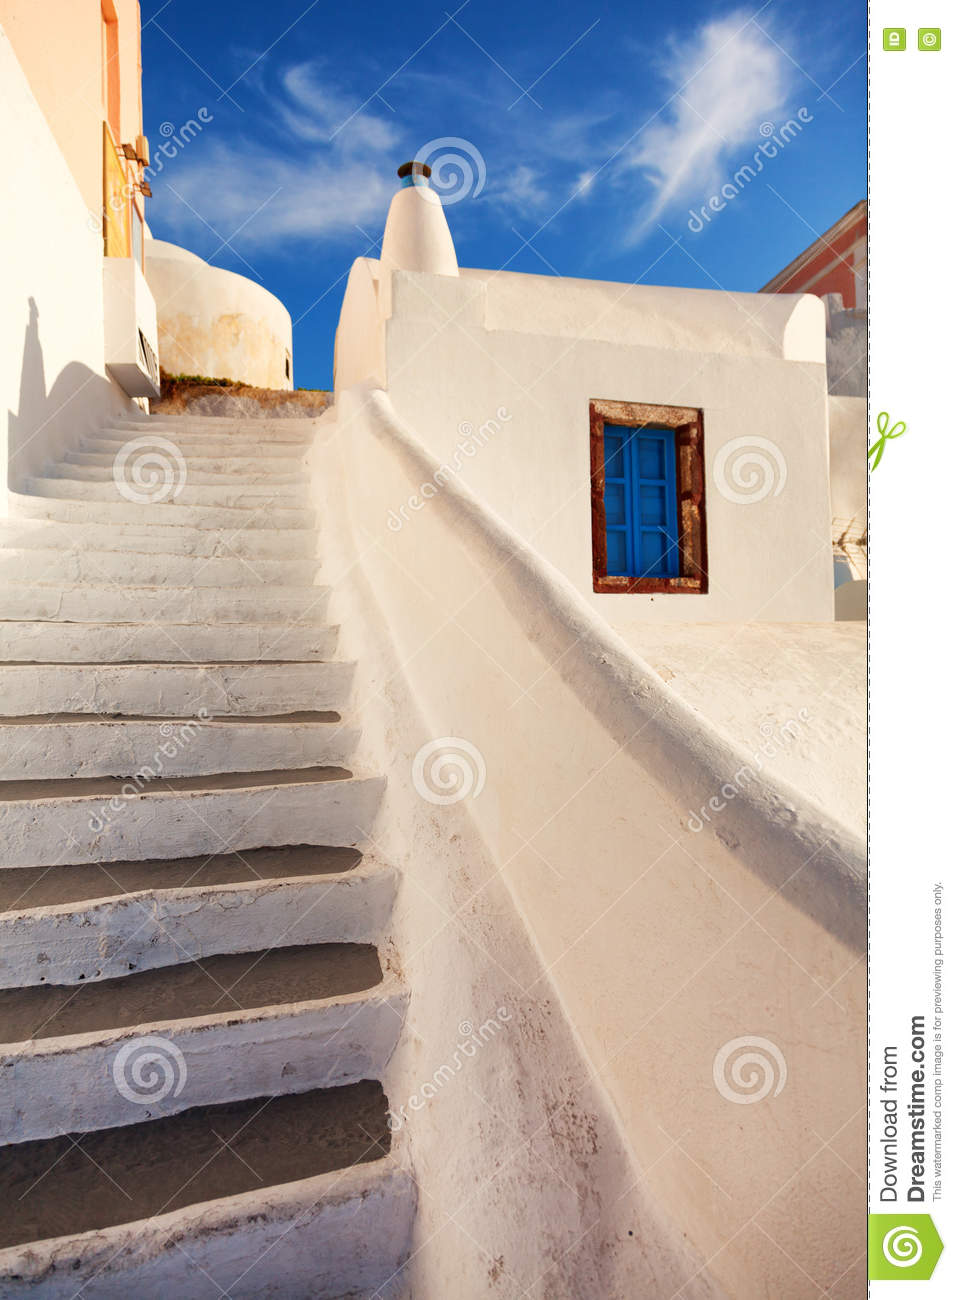 treppe in oia santorini stockfoto bild 72220246. Black Bedroom Furniture Sets. Home Design Ideas